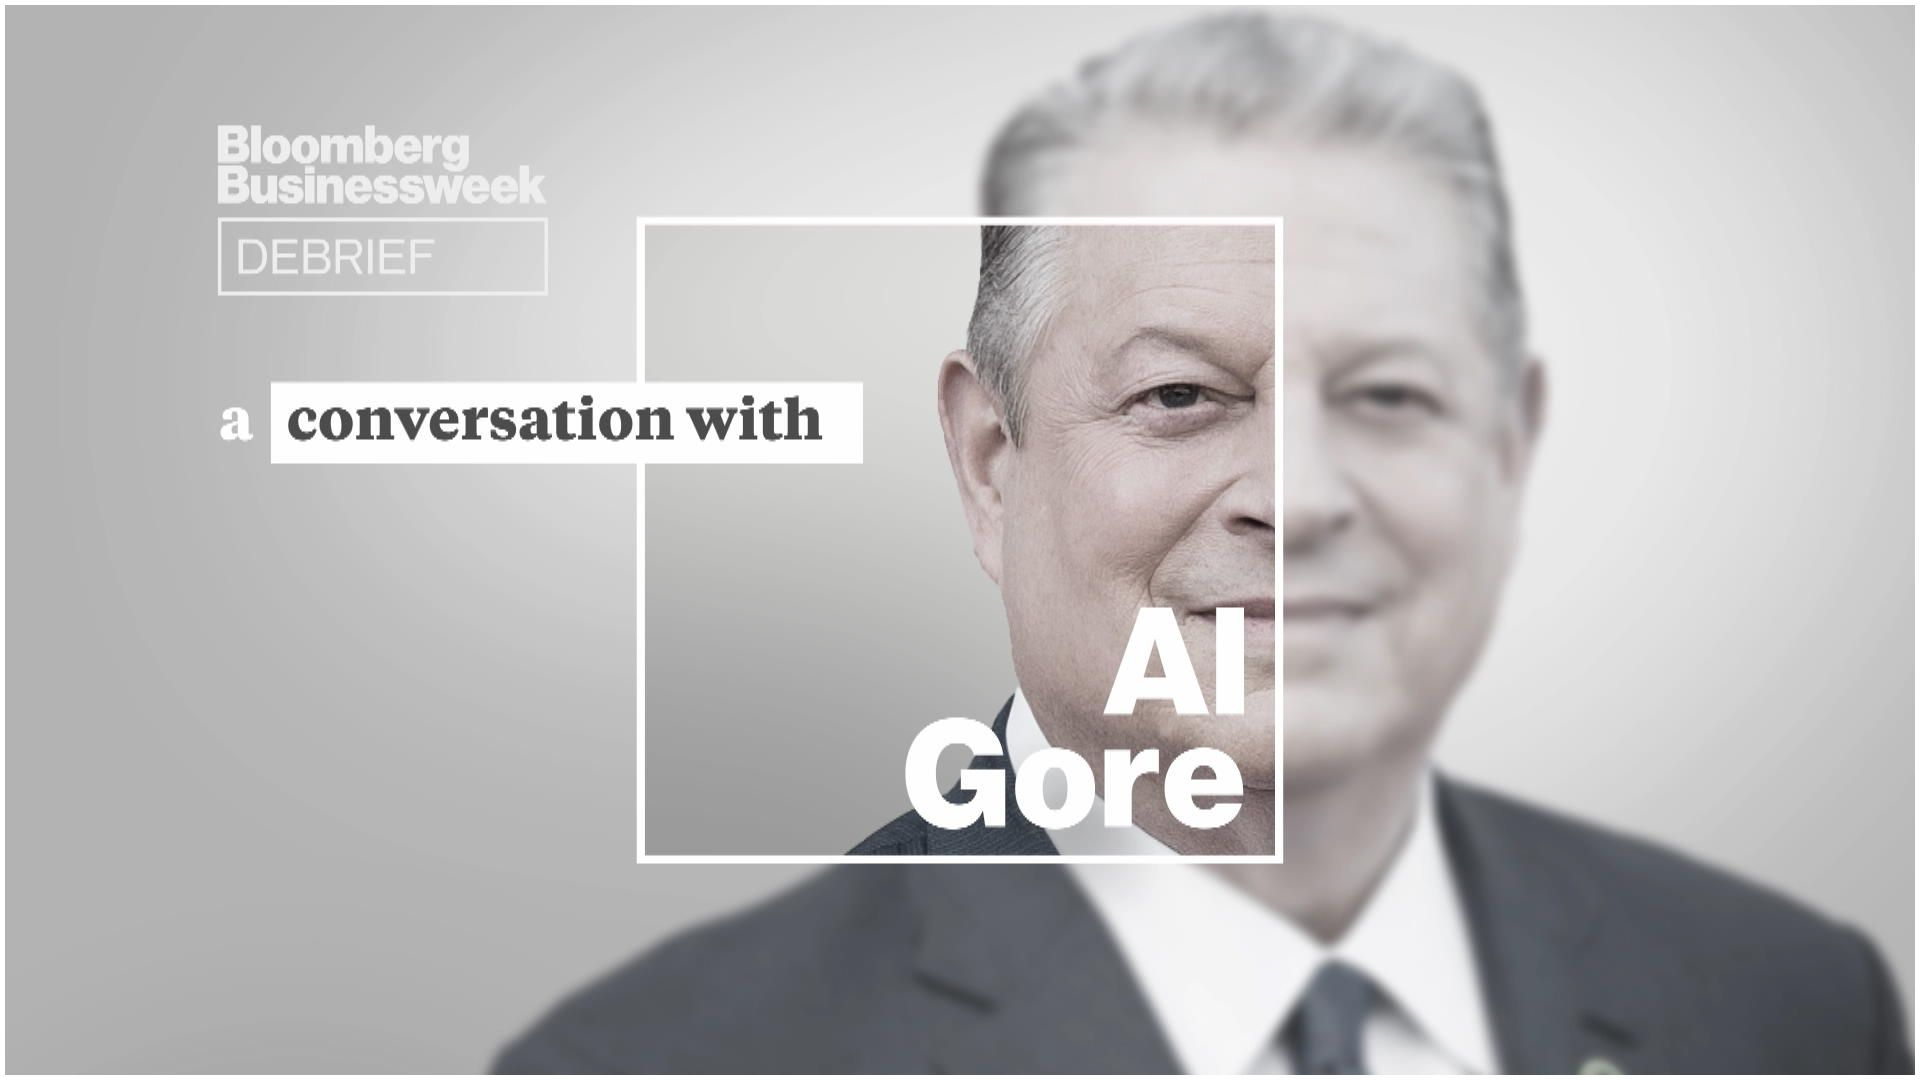 Bloomberg Businessweek Reviews Businessweek Debrief A Conversation with Al Gore – Bloomberg